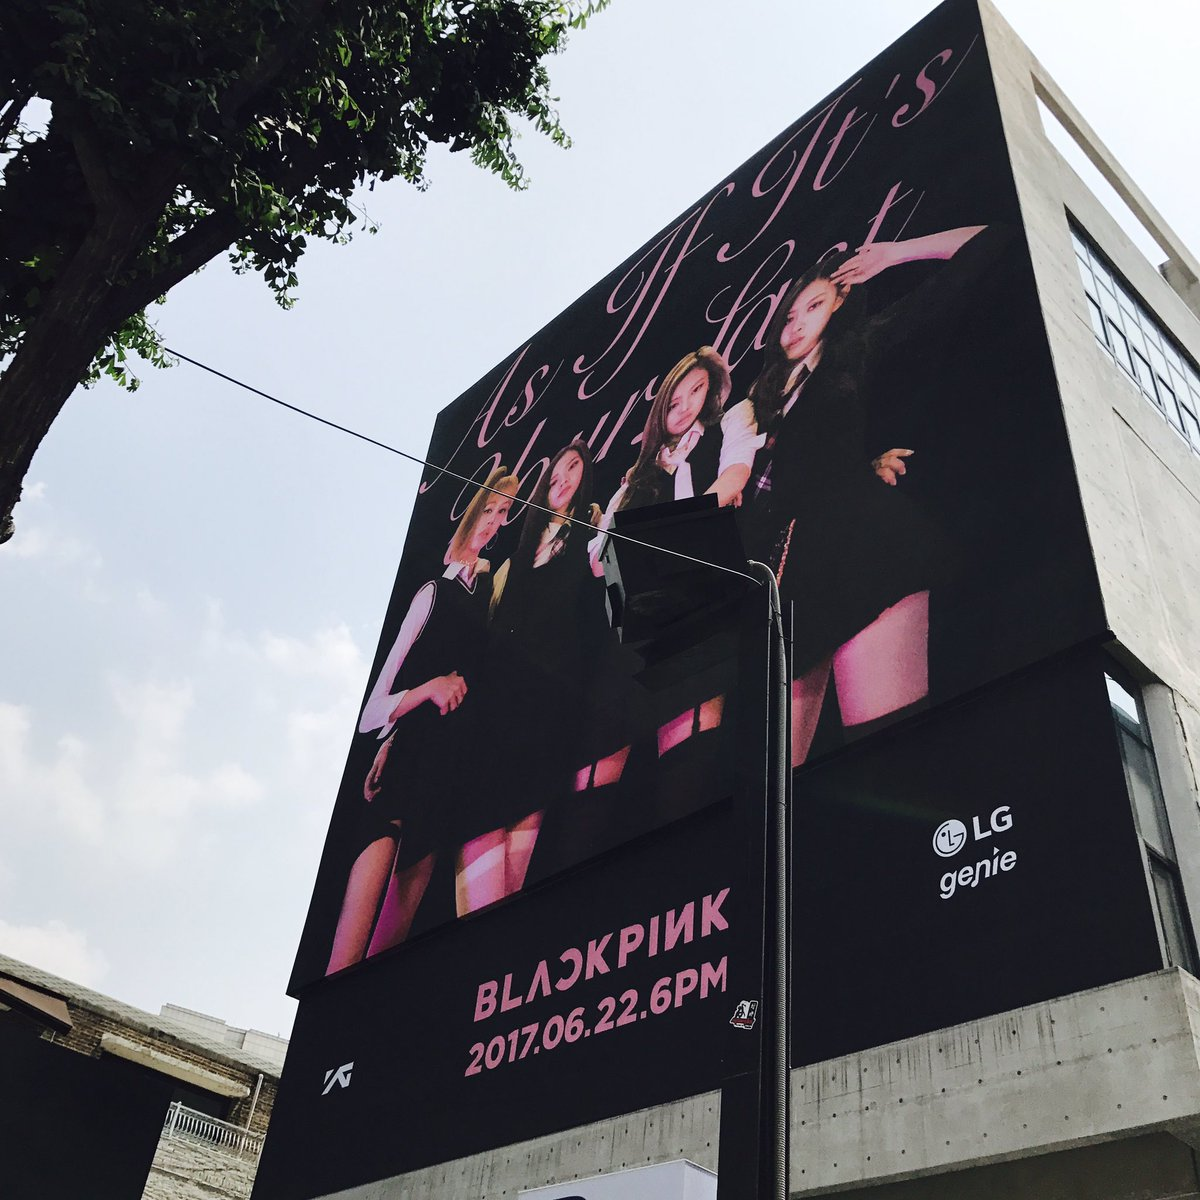 [FANTAKEN] BLACKPINK's Pop-Up Store